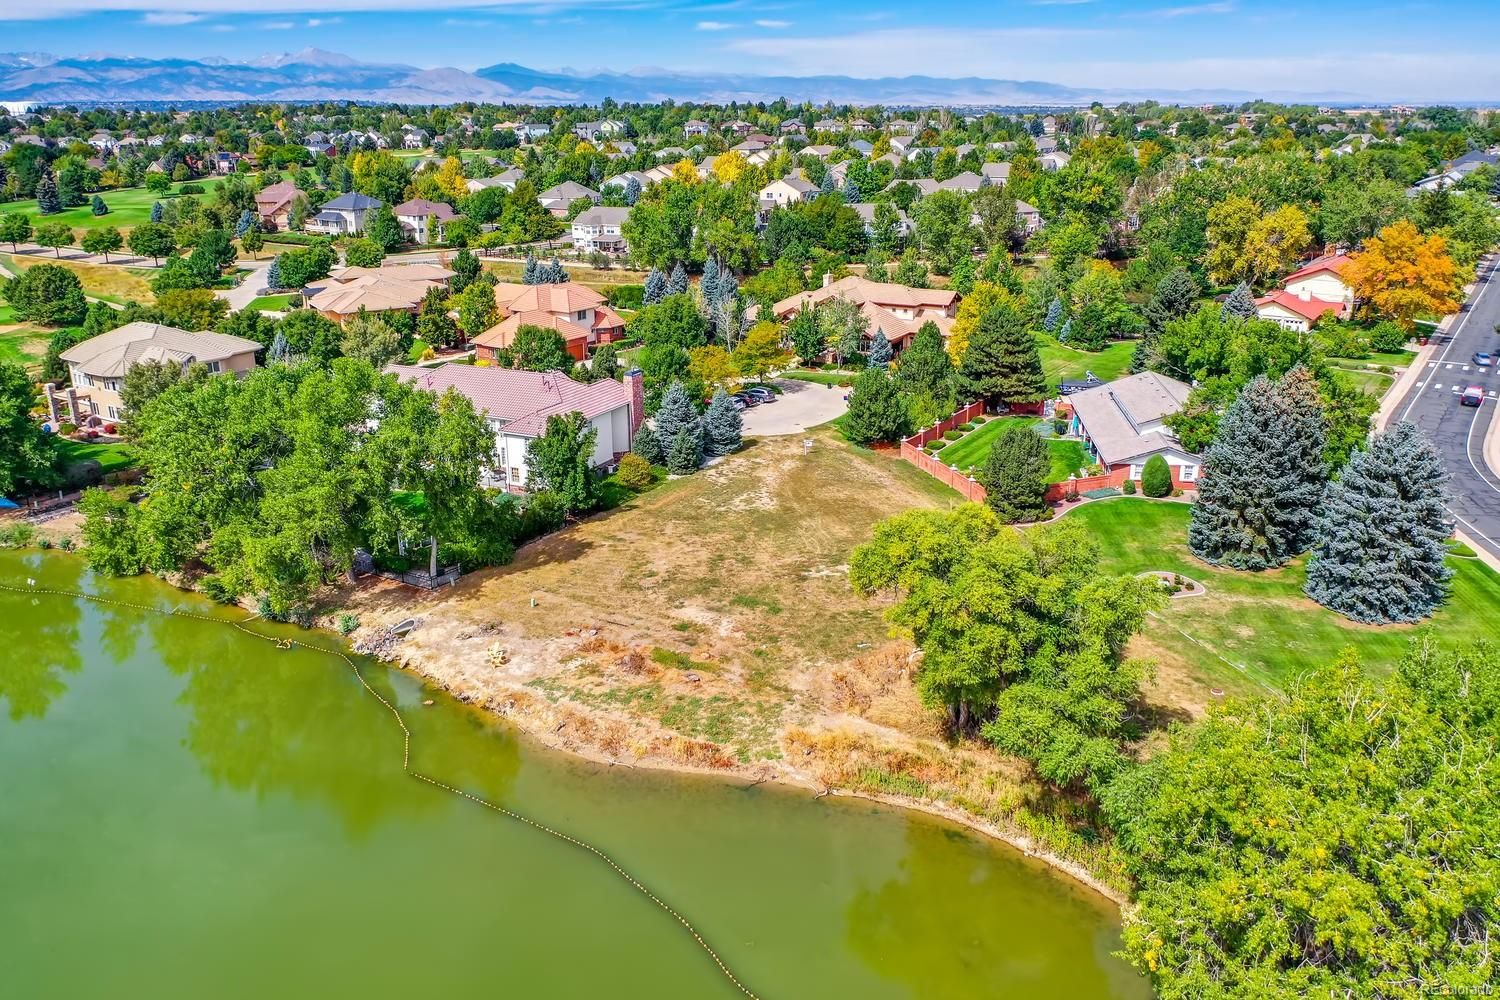 980 E 14th Way, Broomfield, CO 80020 - Broomfield, CO real estate listing